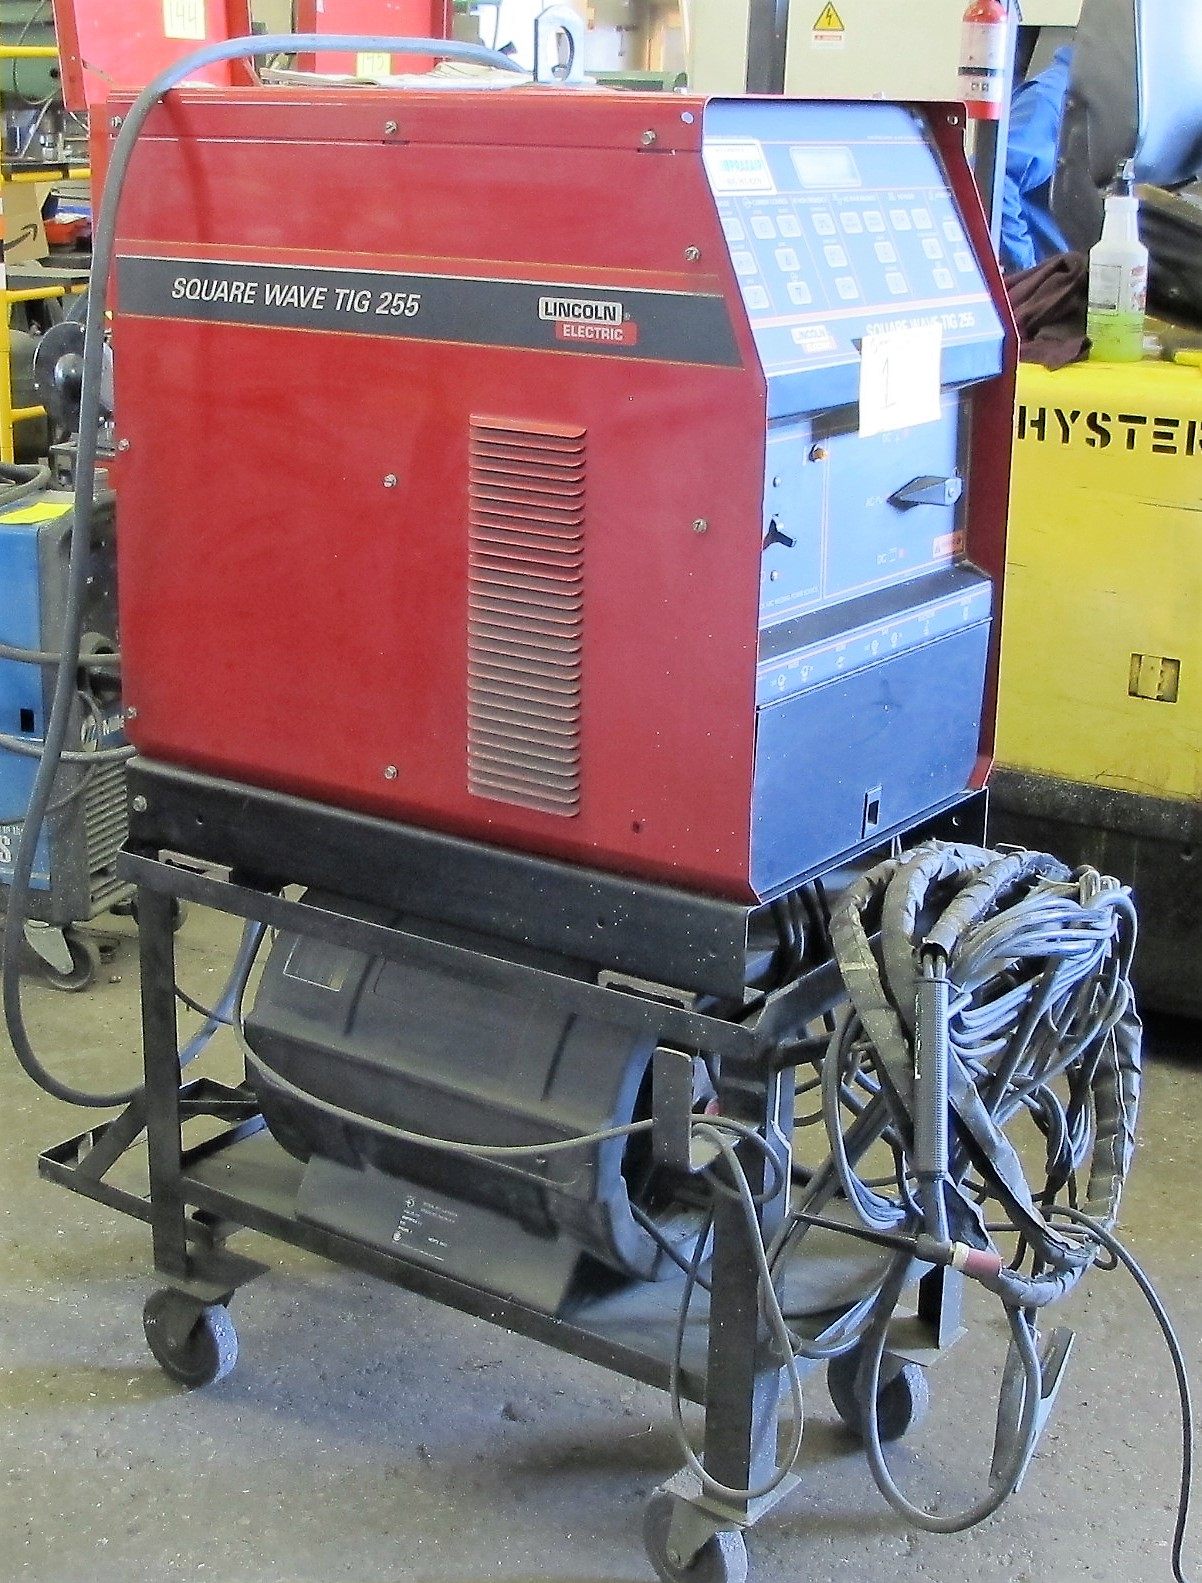 LINCOLN ELECTRIC SQUARE WAVE TIG 255 WELDER W/LA105939 COOLING SYSTEM, CART AND CABLES - Image 2 of 4